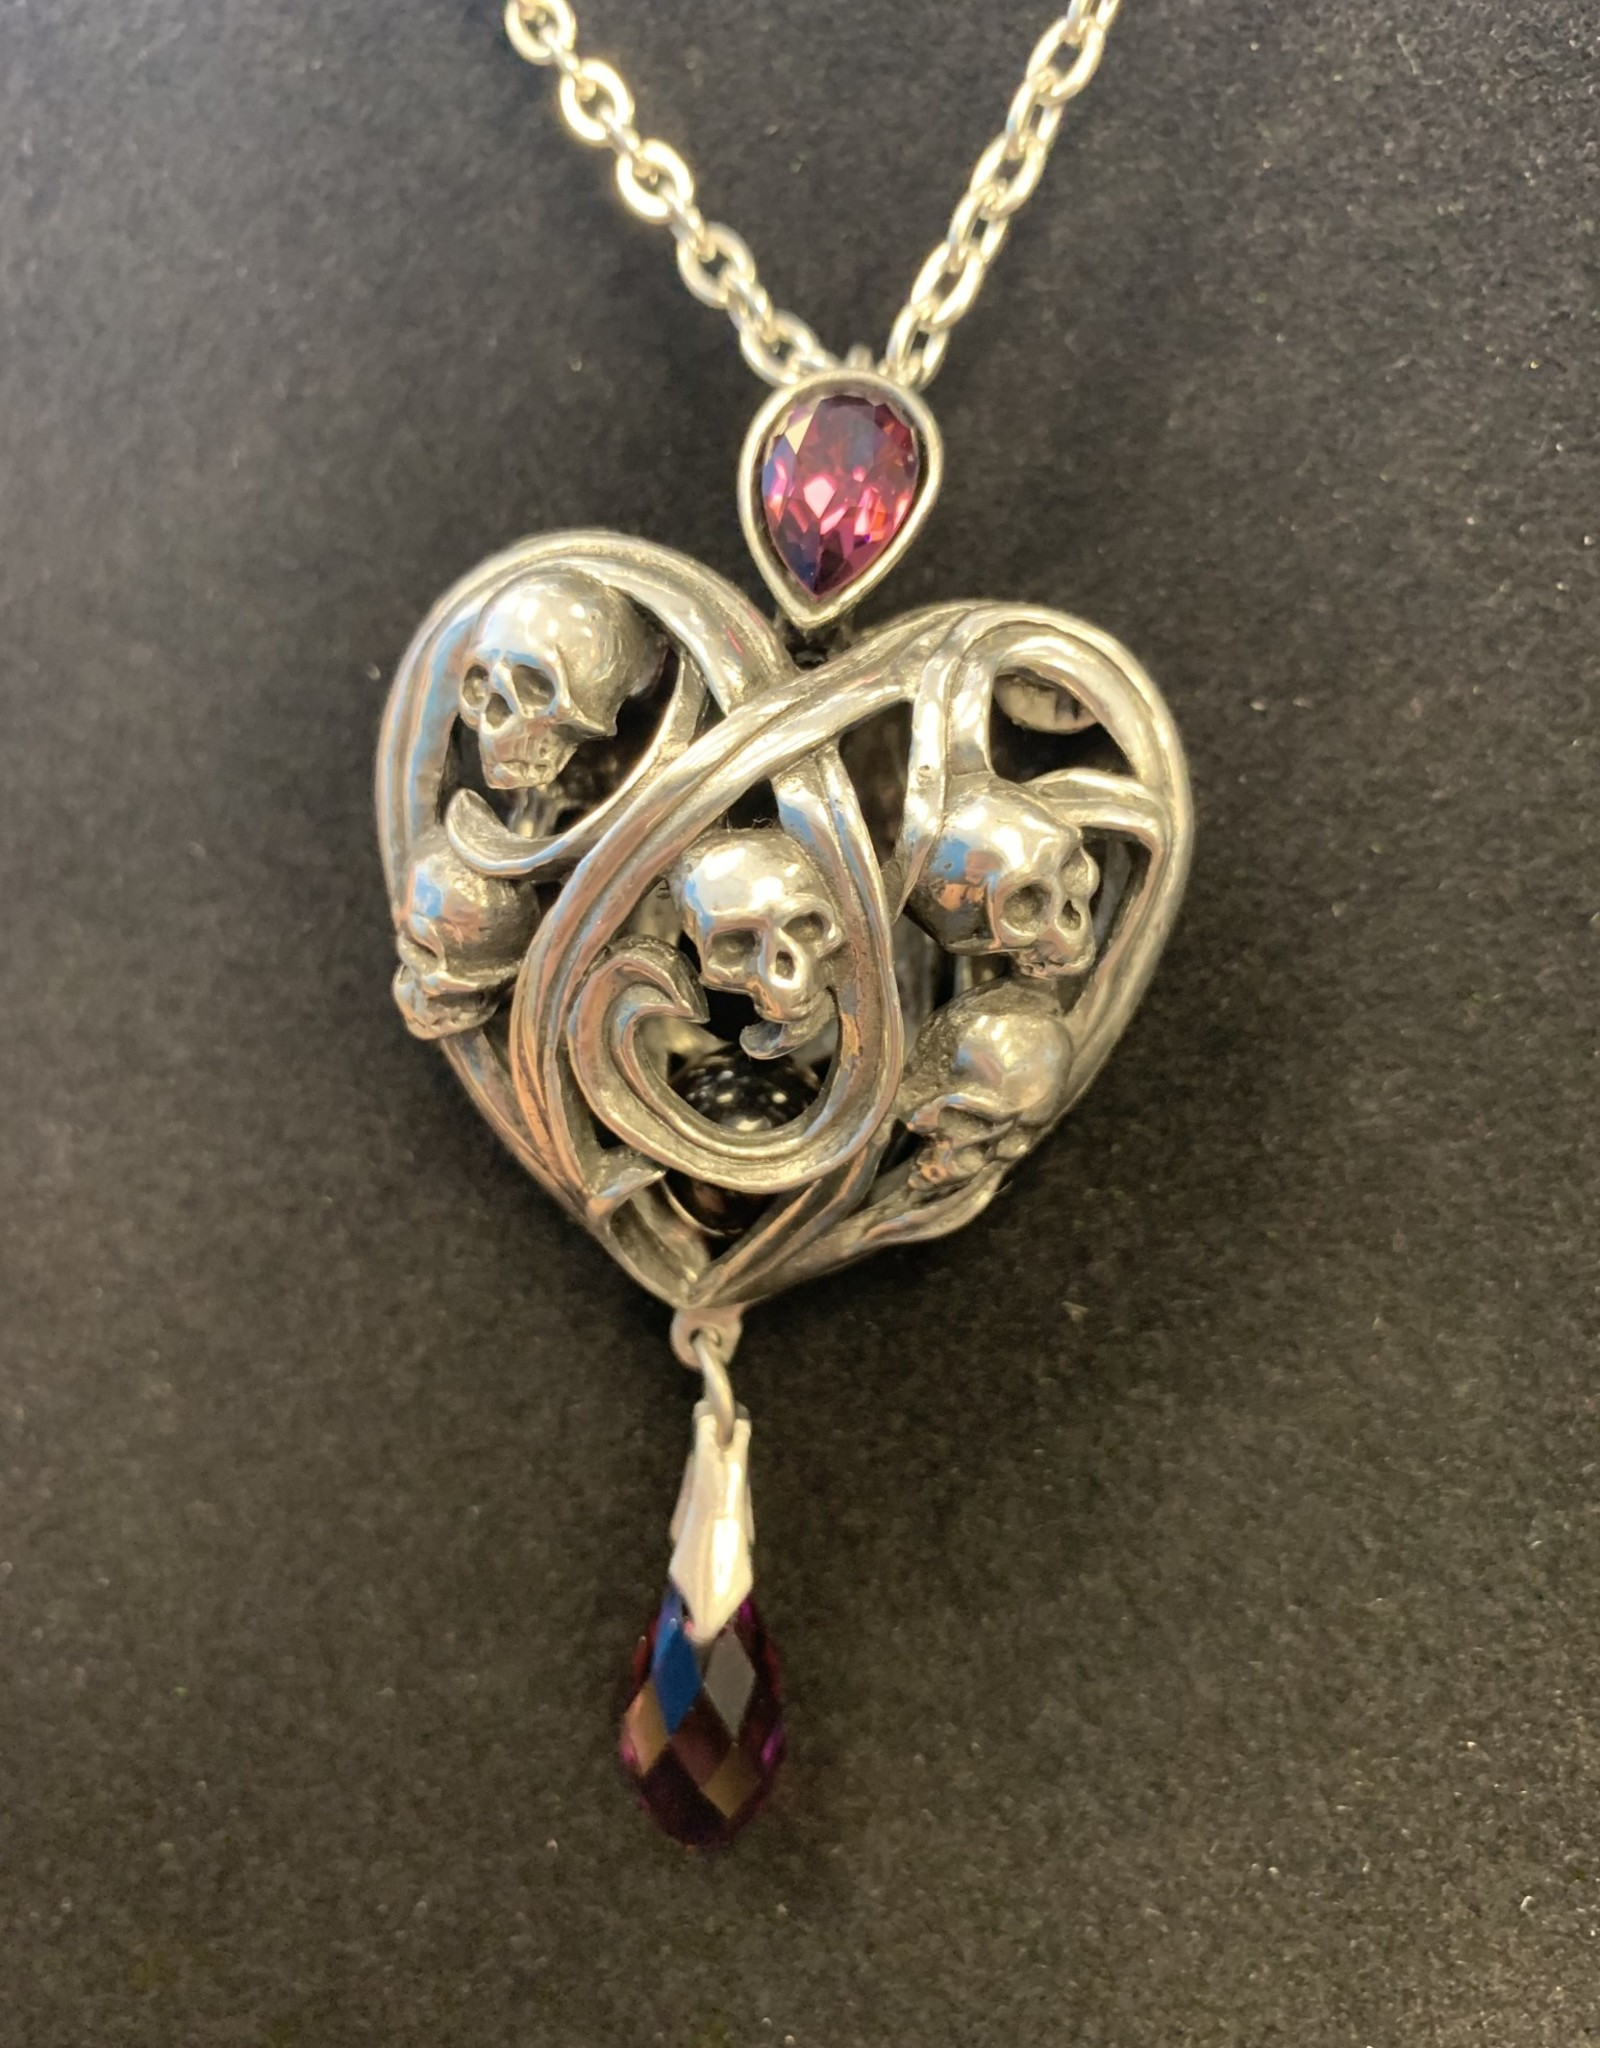 Keepers of Tyrian Pendant